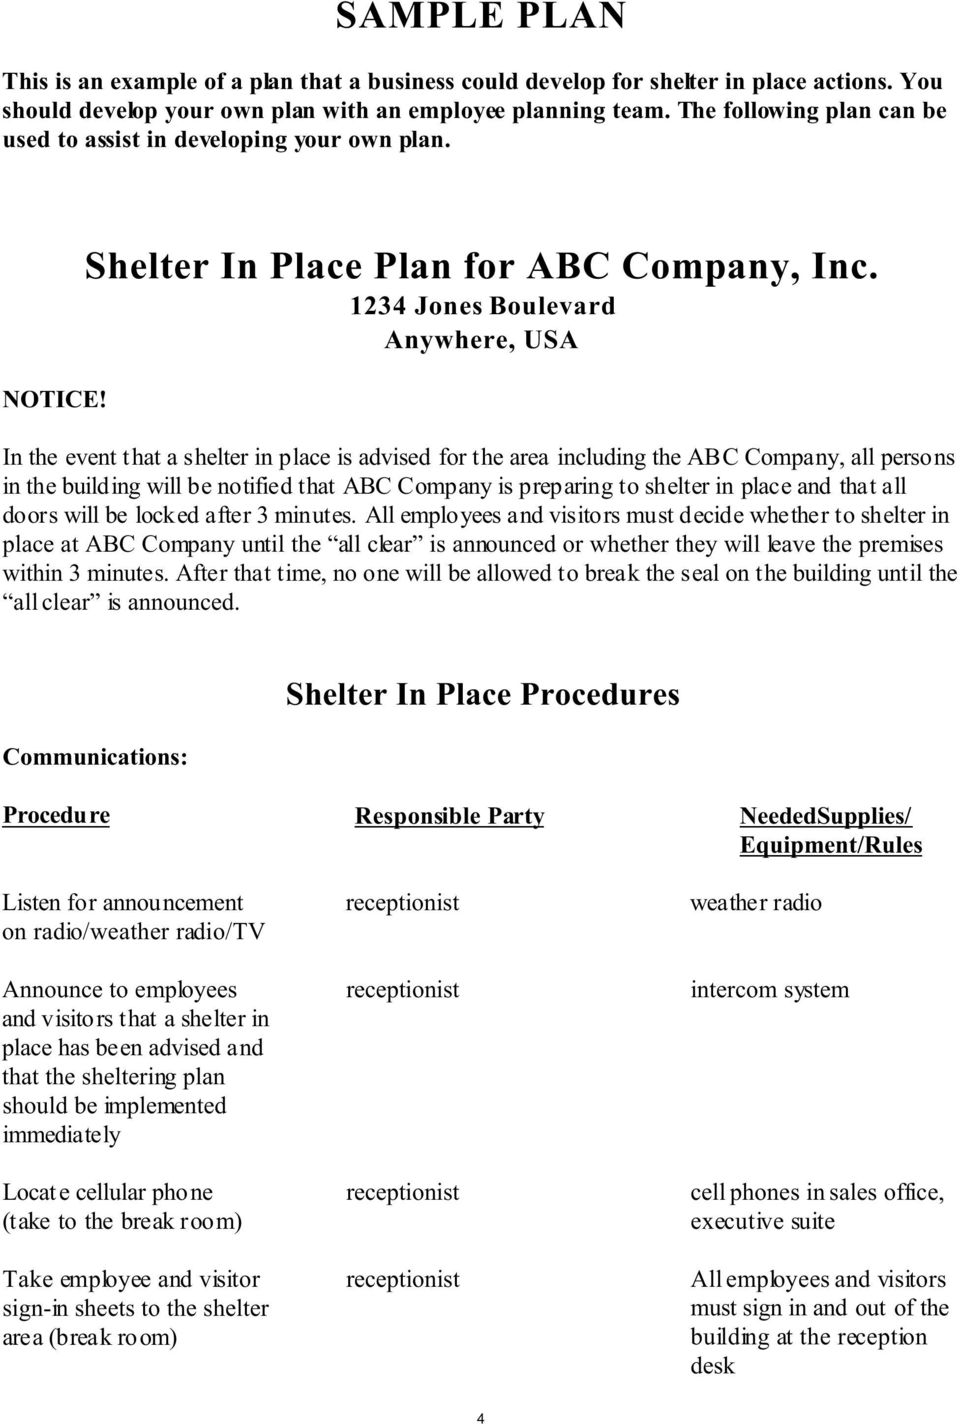 1234 Jones Boulevard Anywhere, USA In the event that a shelter in place is advised for the area including the ABC Company, all persons in the building will be notified that ABC Company is preparing